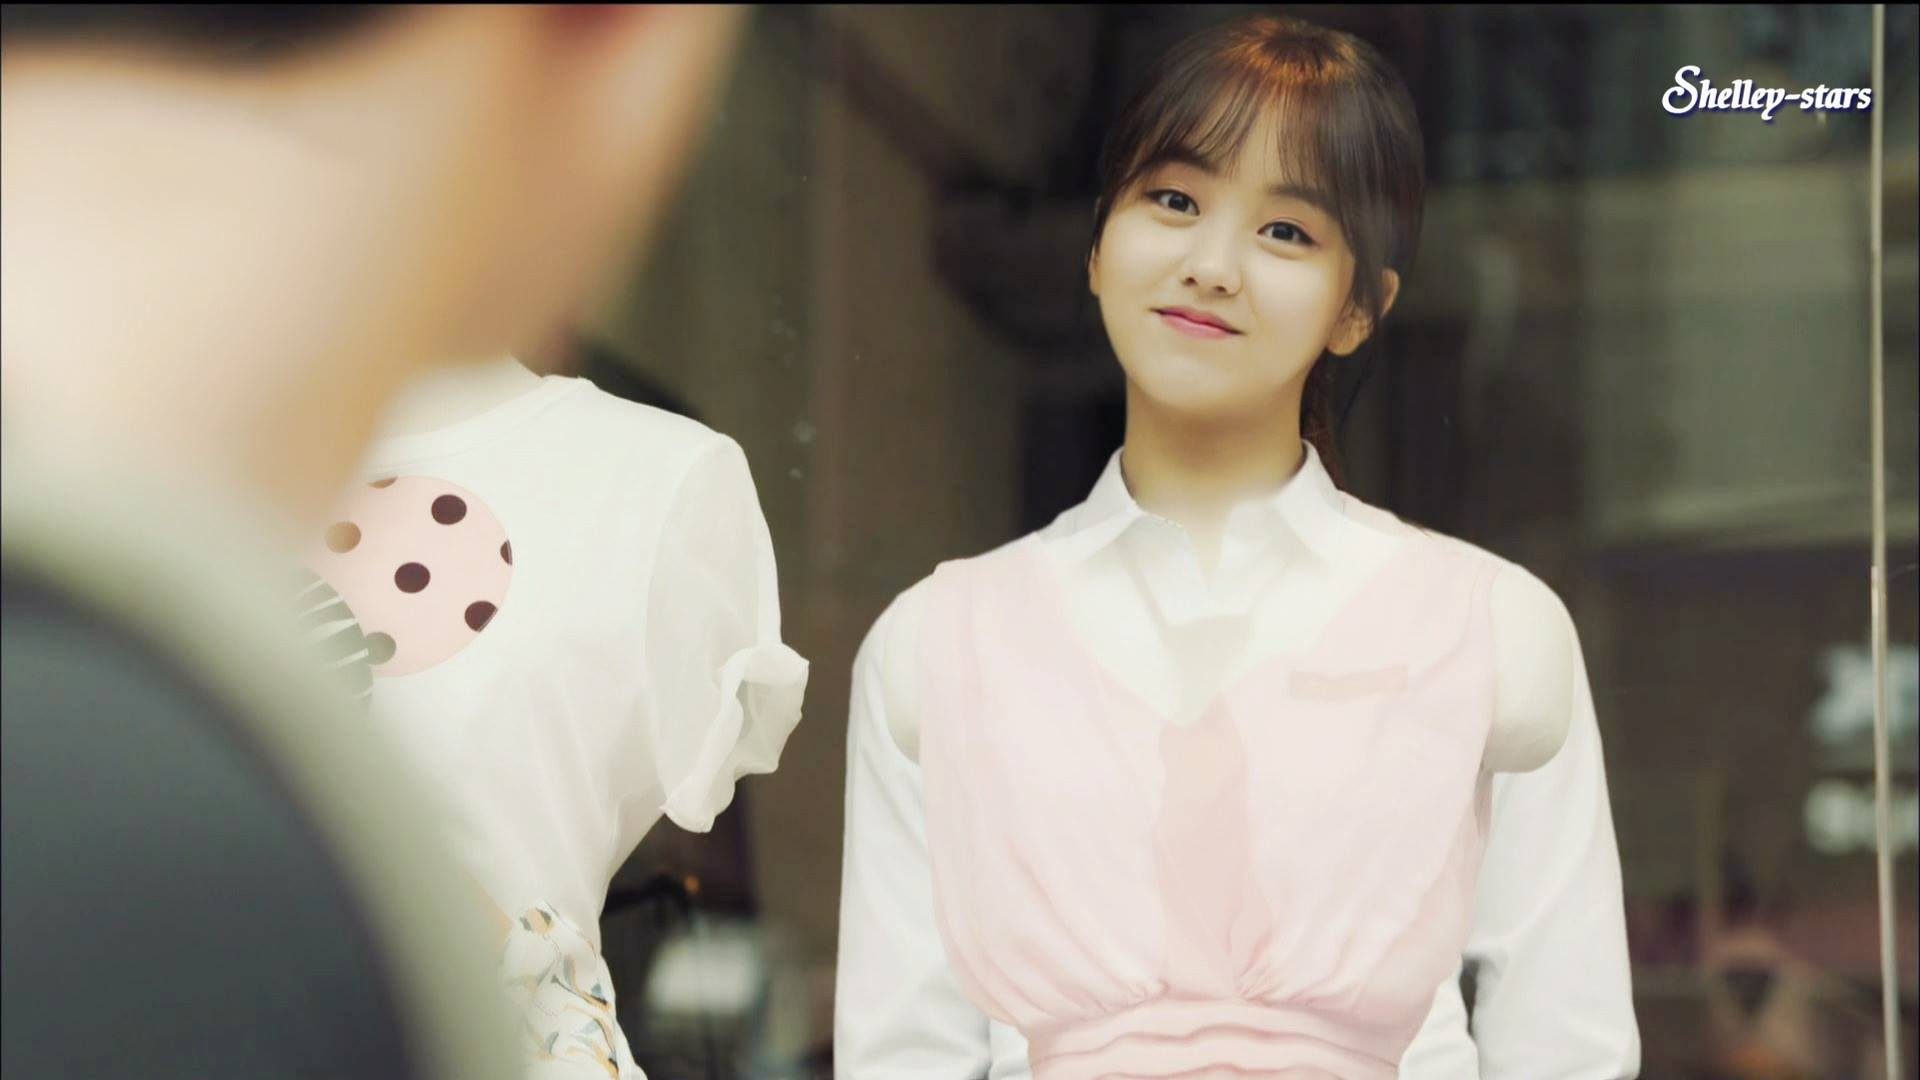 Kim So-hyun - K-Drama - Asiachan KPOP Image Board